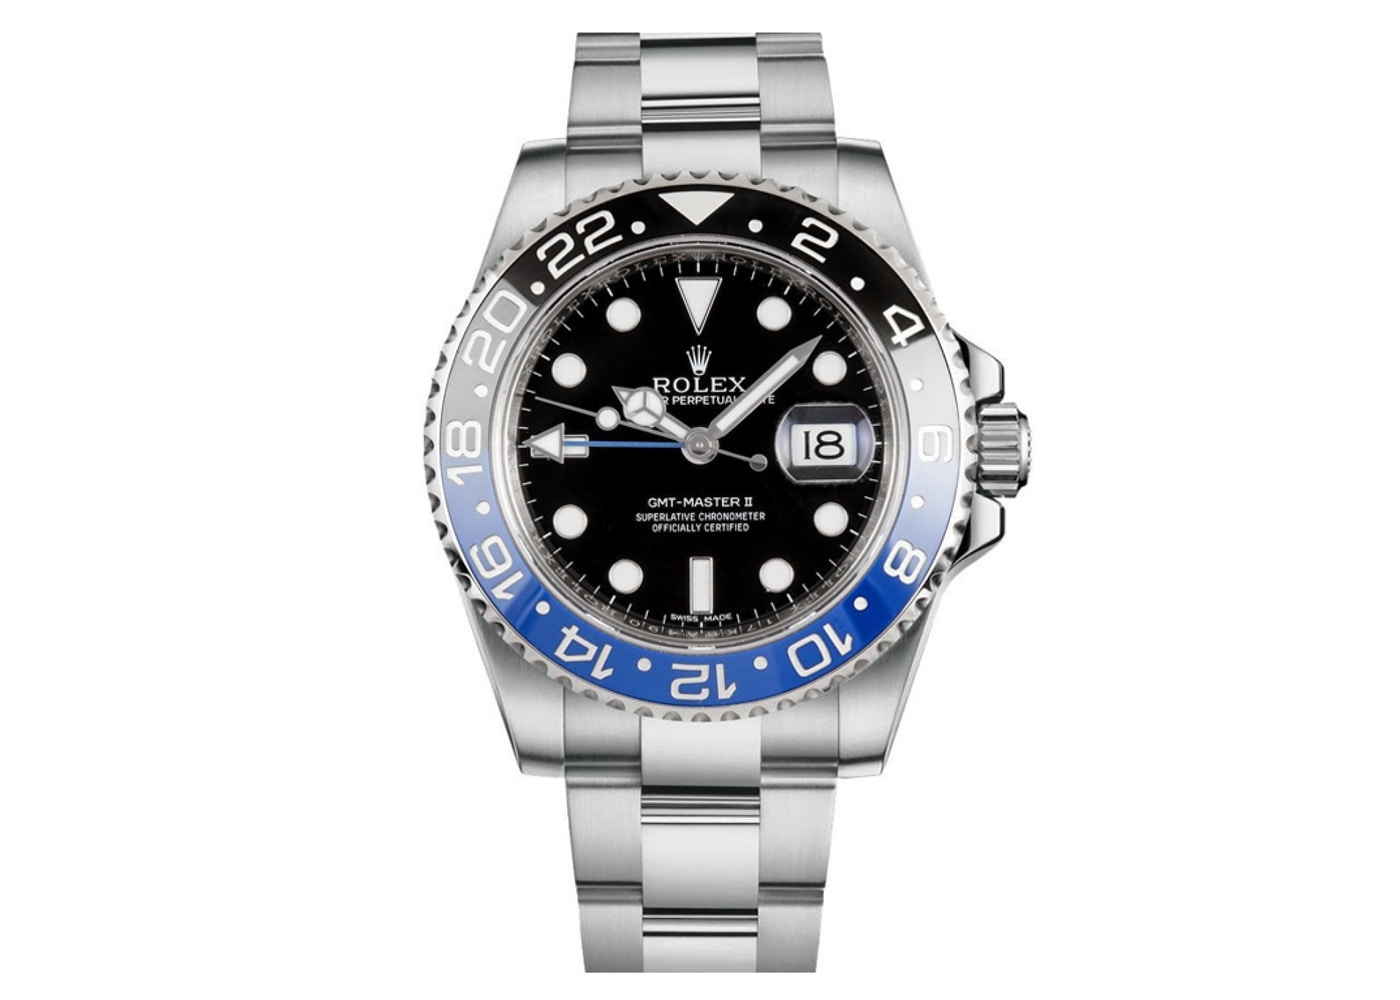 Rolex gmt master ii 116710blnr 40mm for Rolex gmt master